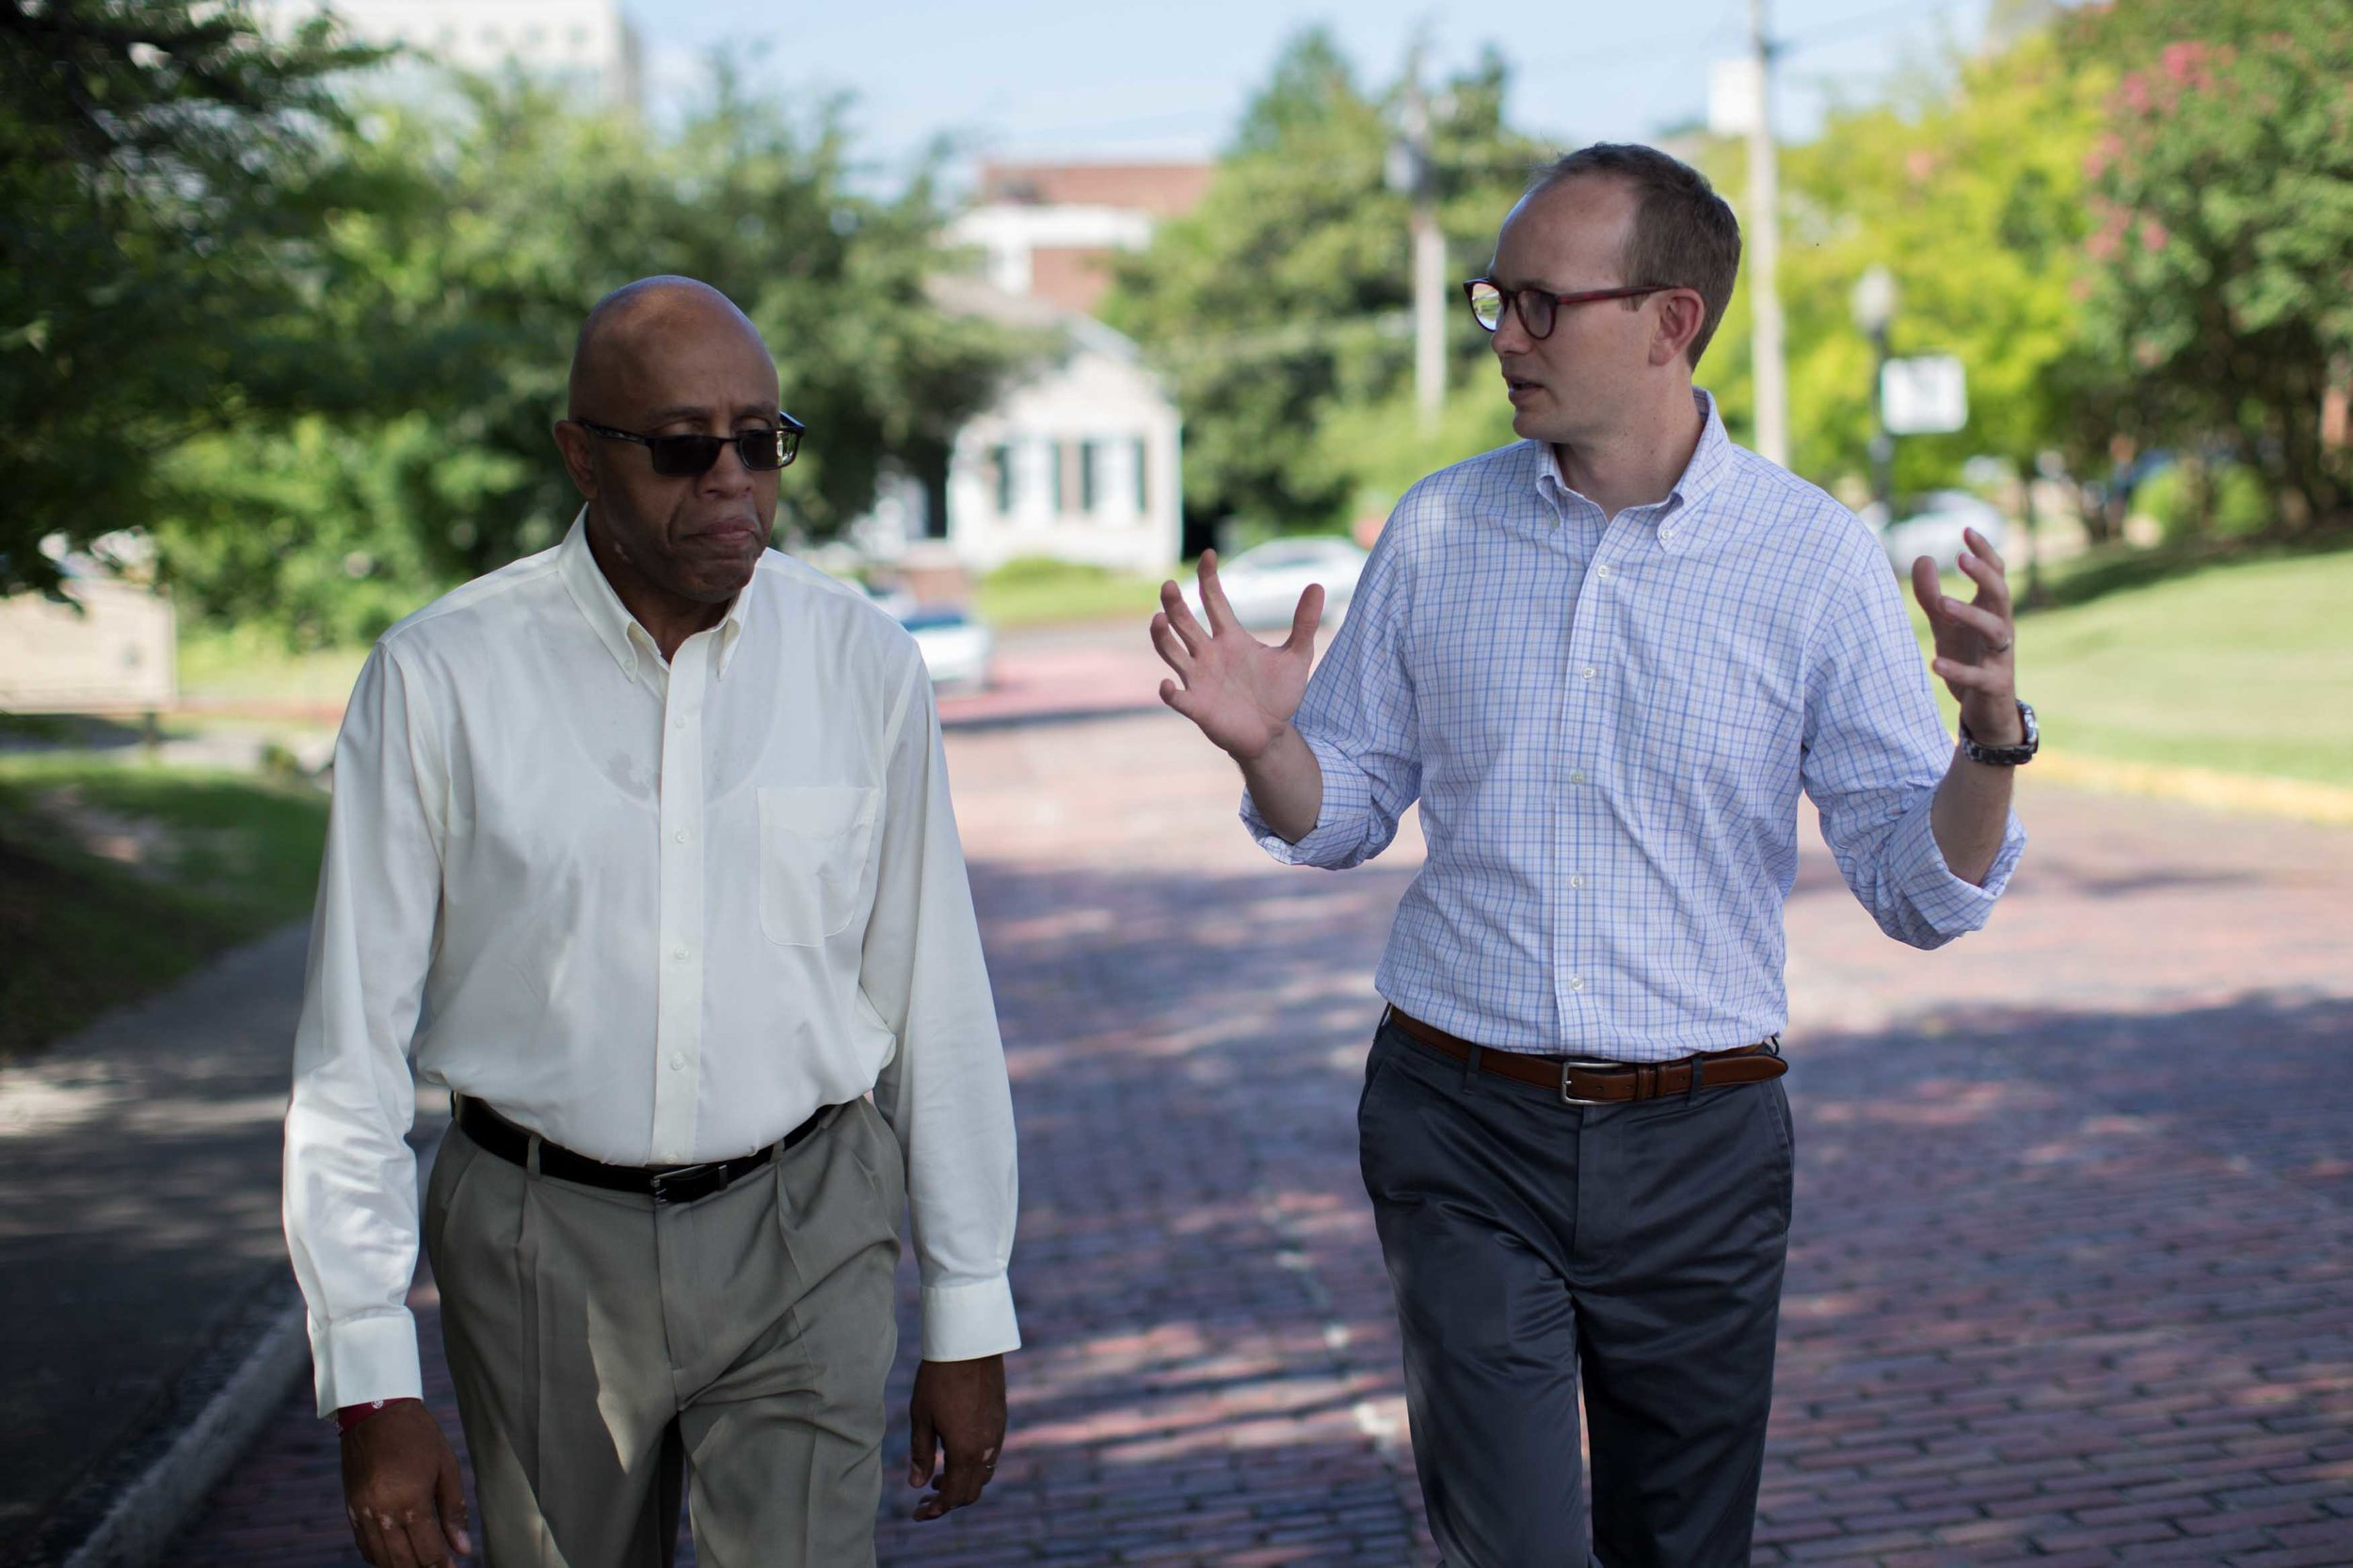 The Rev. James W. Goolsby, Jr., pastor of the First Baptist Church, left, and the Rev. Scott Dickison, pastor of the First Baptist Church of Christ, walk together in Macon, Ga., on Monday, July 11, 2016. In September 2016, they plan to lead joint discussions with their churches' members on racism in the history of the U.S., and also in the history of their congregations. (AP Photo/Branden Camp)